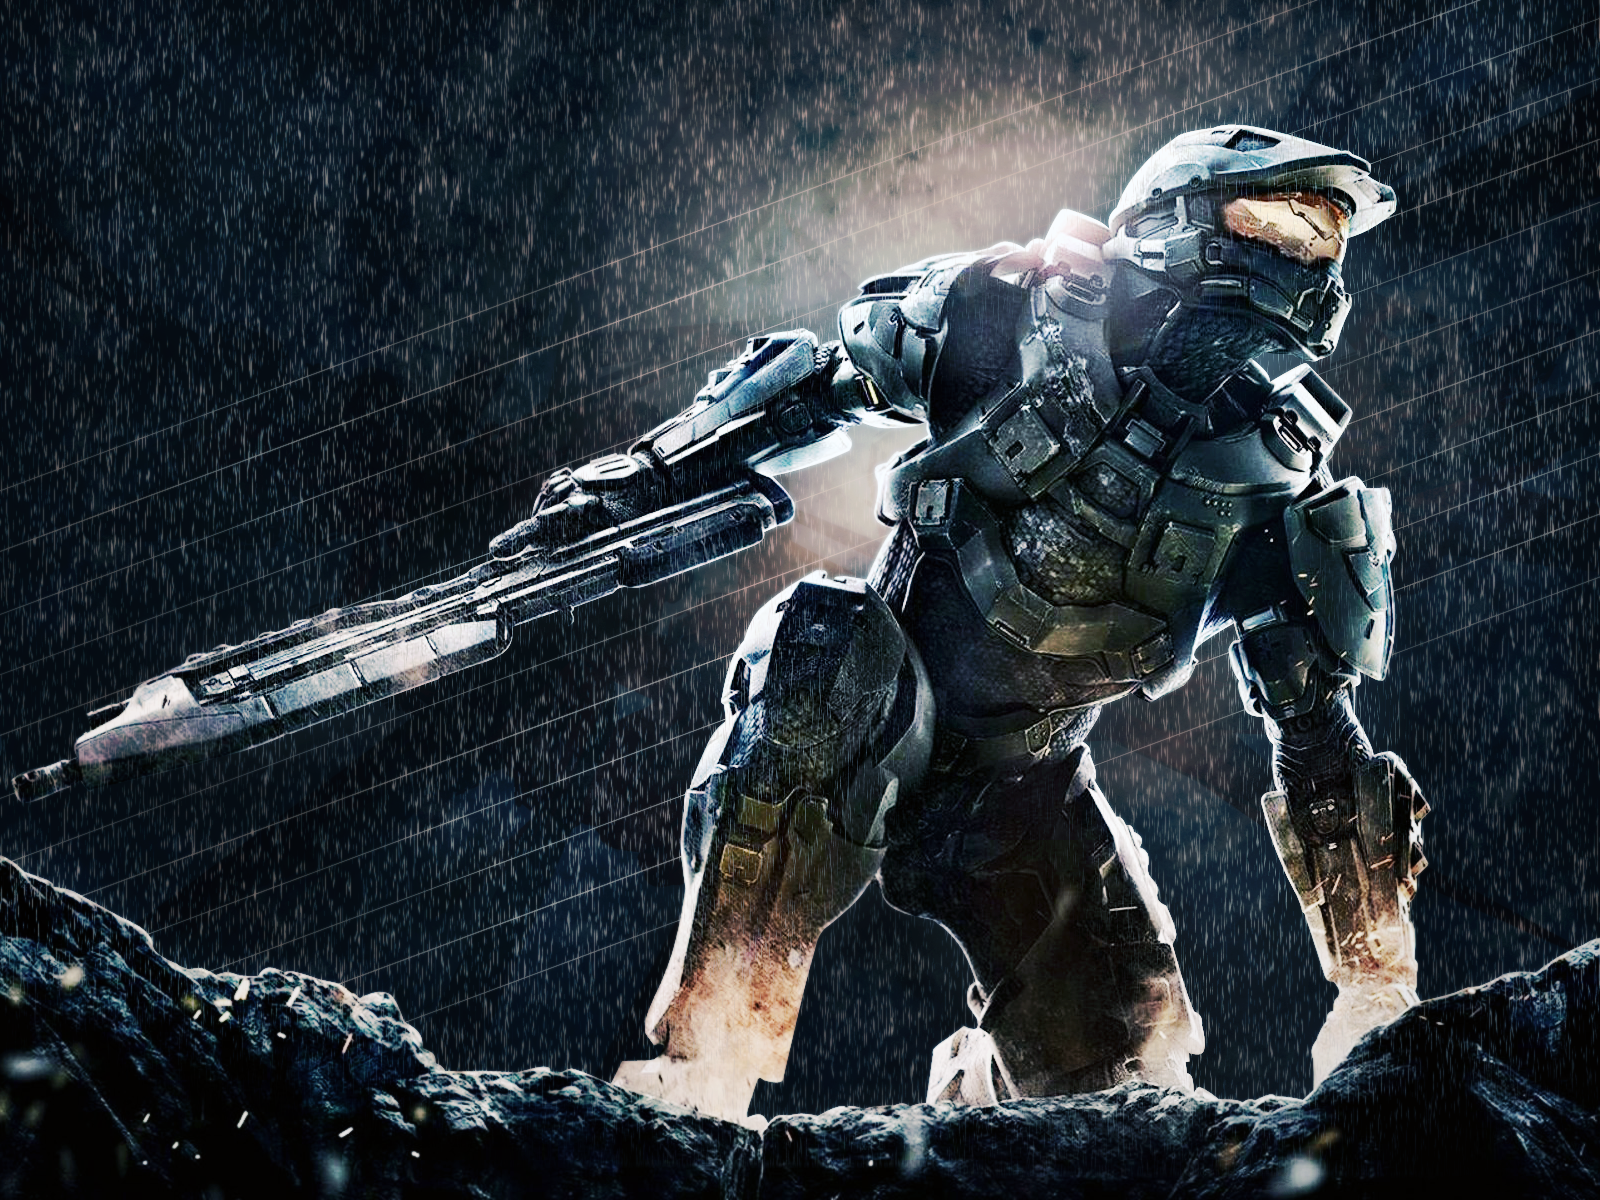 Halo 4 Google Search Halo 4 Chiefs Wallpaper Halo Backgrounds